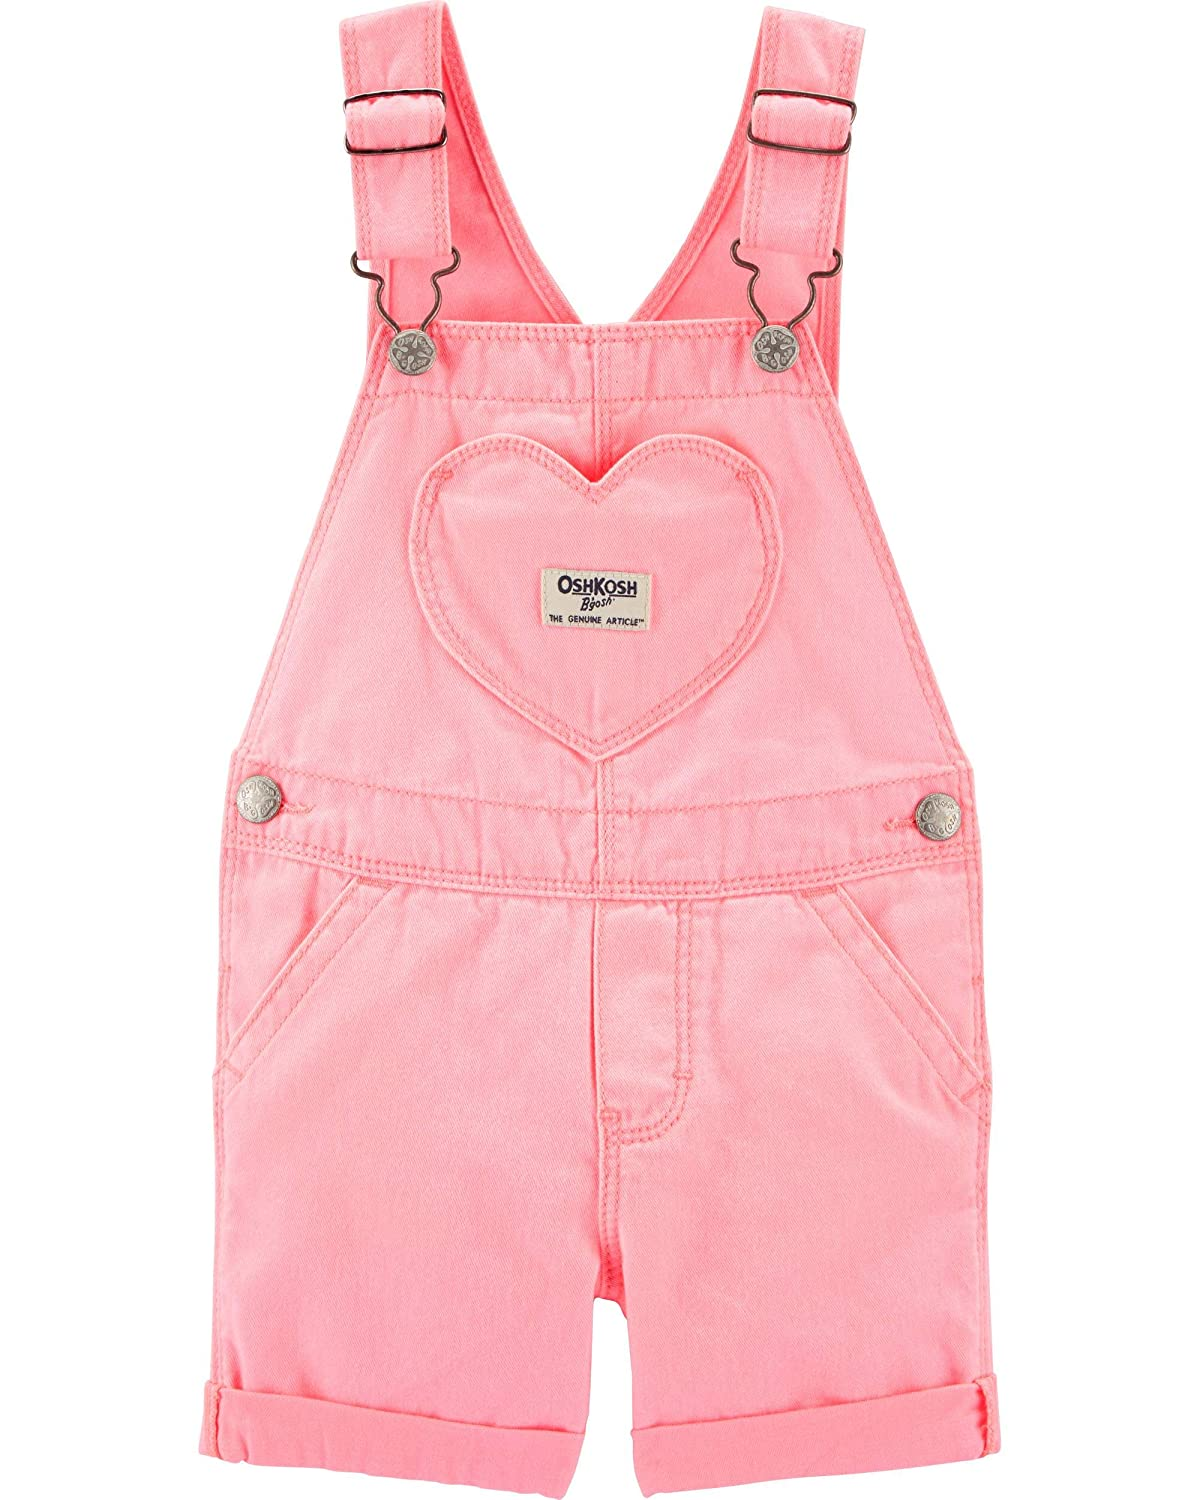 数量は多 OshKosh B'Gosh B'Gosh PANTS ガールズ B07H3J3PLD Pink PANTS Heart Shortall|9 Shortall ベビー ガールズ ベビー ガールズ |Pink Heart Shortall|9 Months, バニティスタジオVS66:26926ffc --- vanhavertotgracht.nl